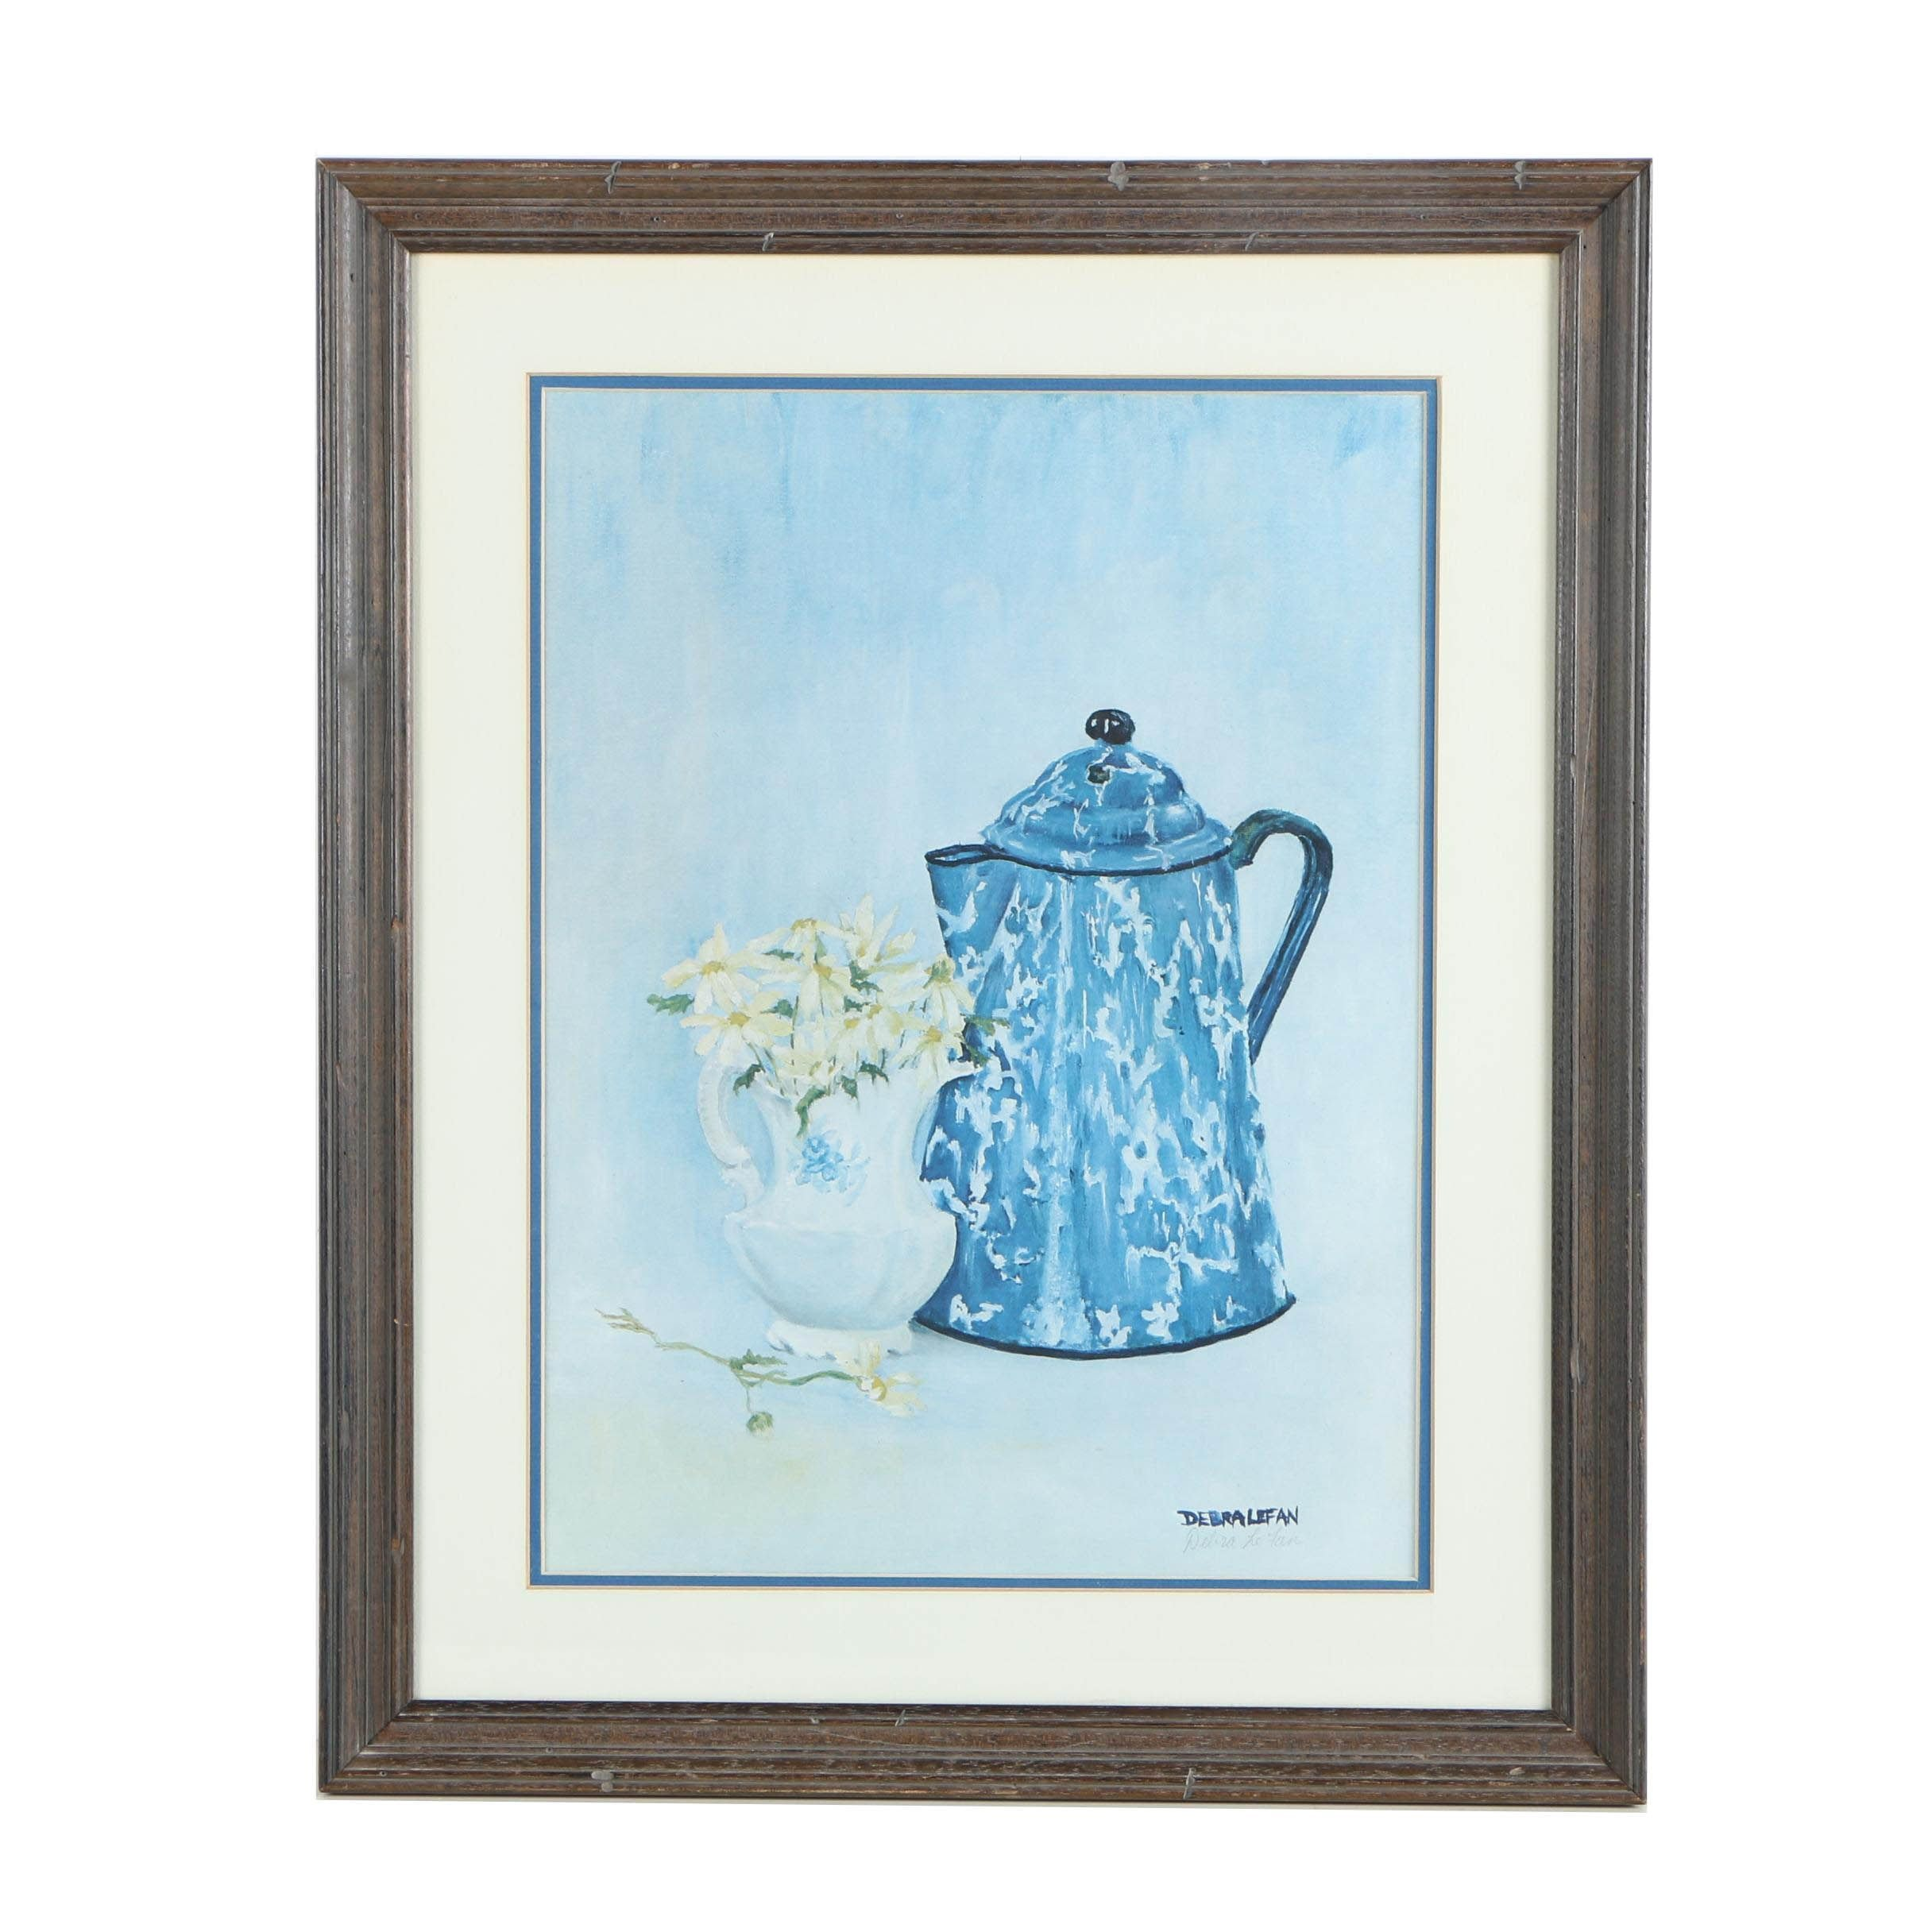 """Debra Le Fan Offset Lithographic Print of """"Reflections of an Era"""""""